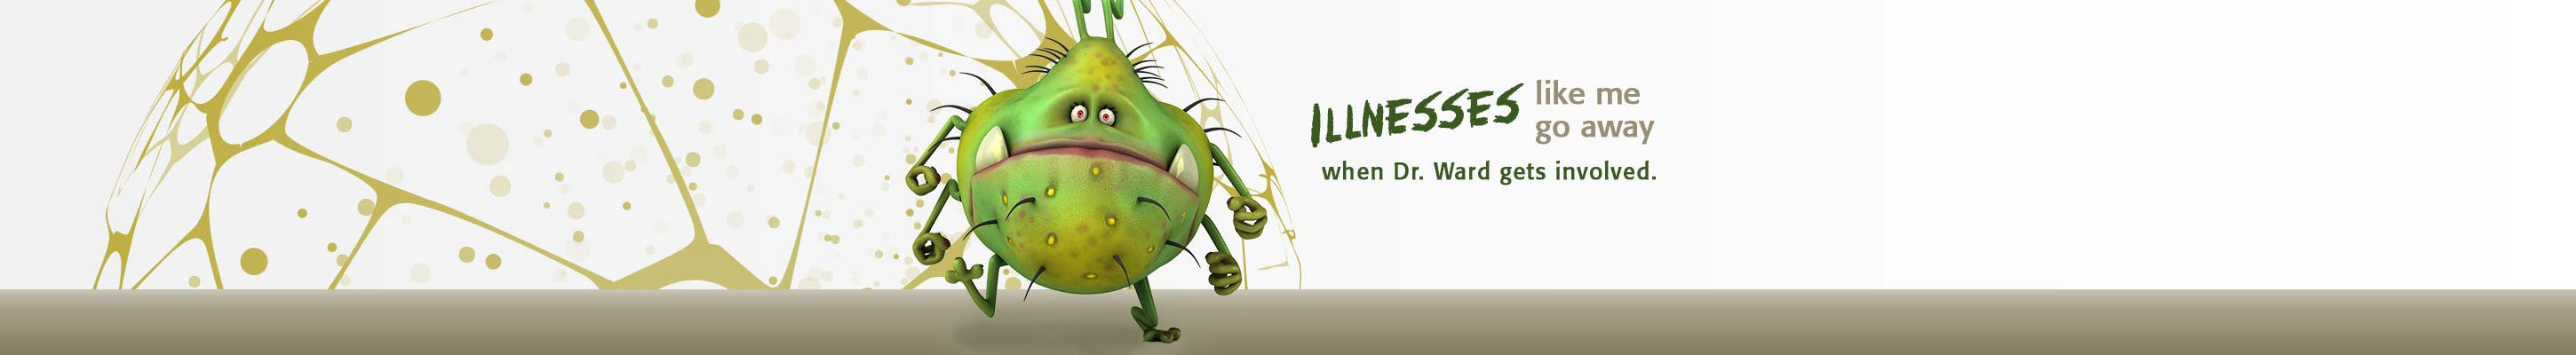 Illnesses Go Away When Dr. Ward Gets Involved